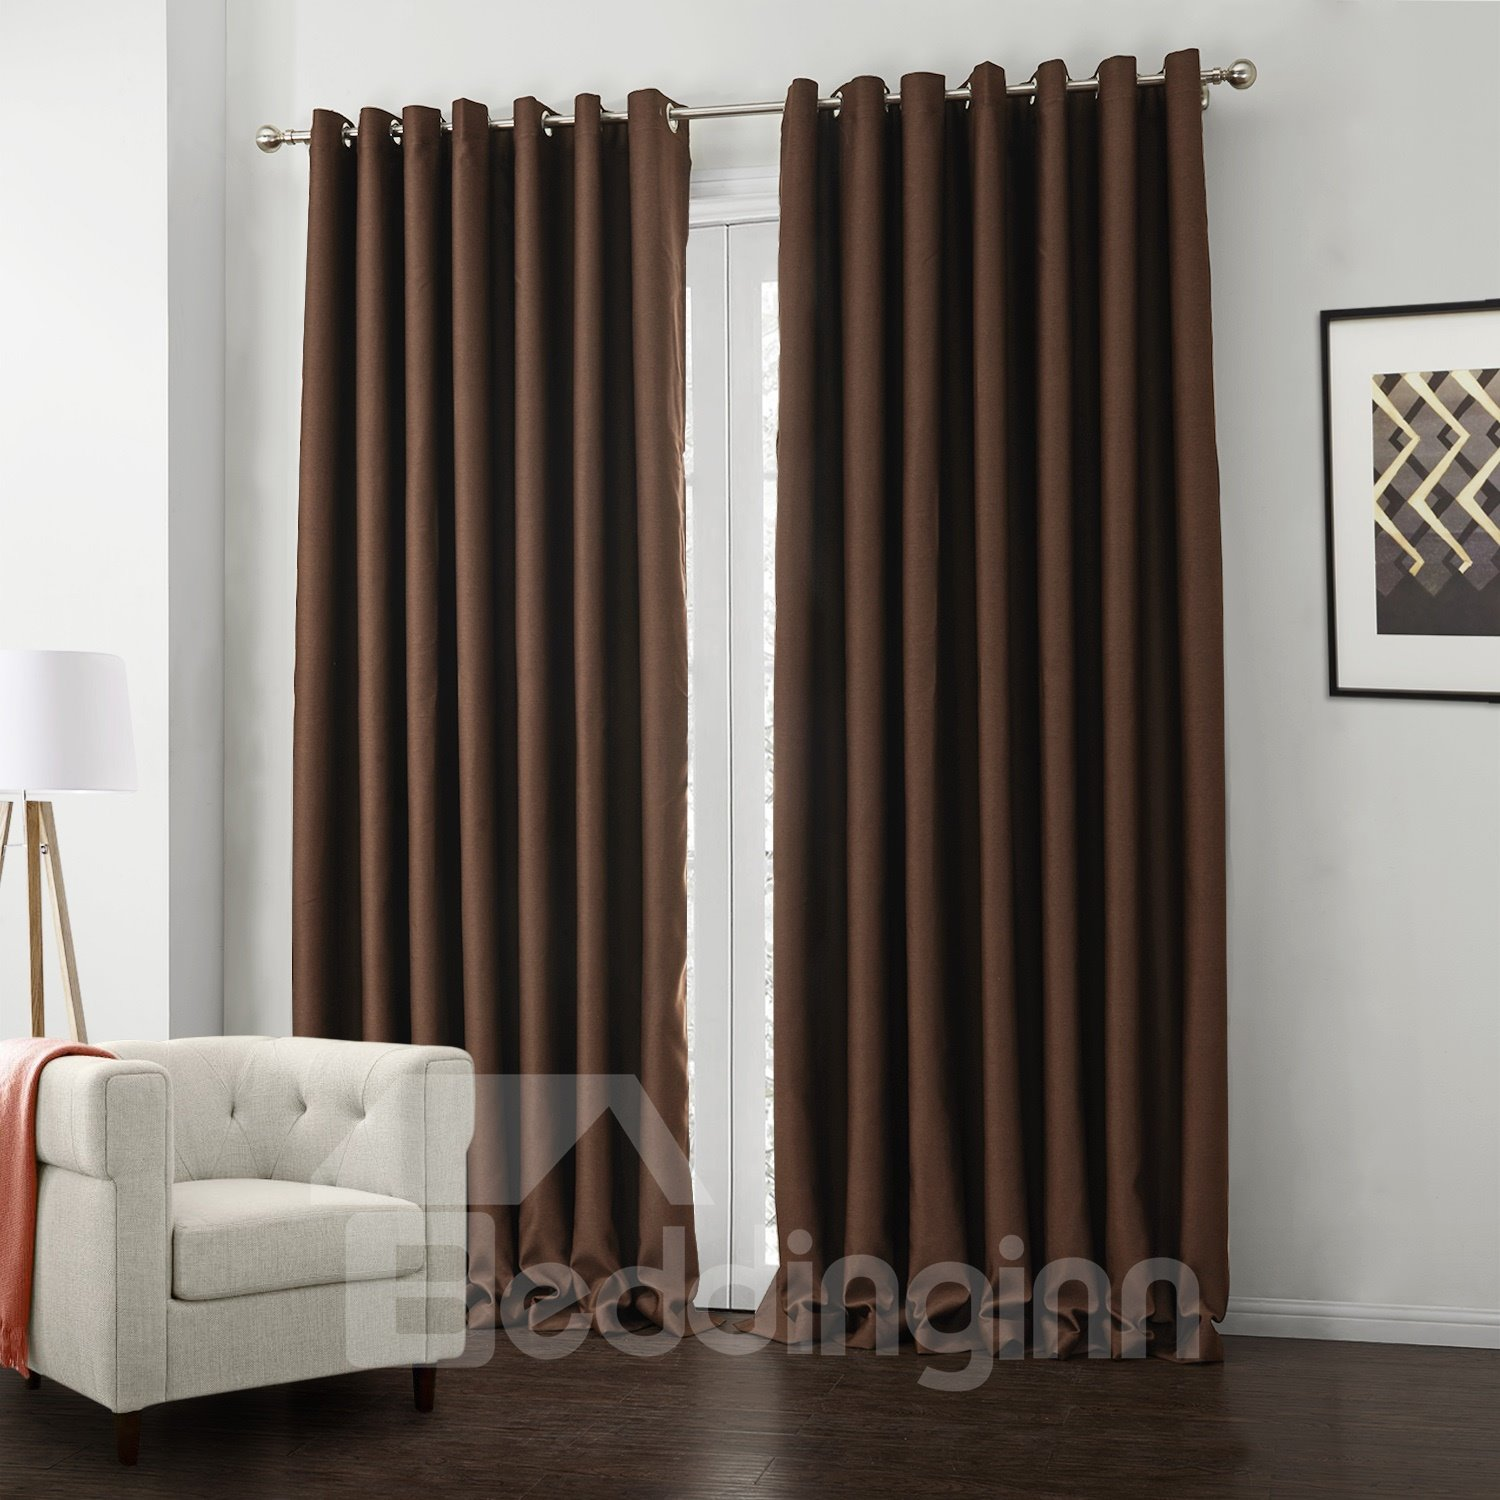 New Classic Wonderful Cationic Thickening High Density Custom Curtain